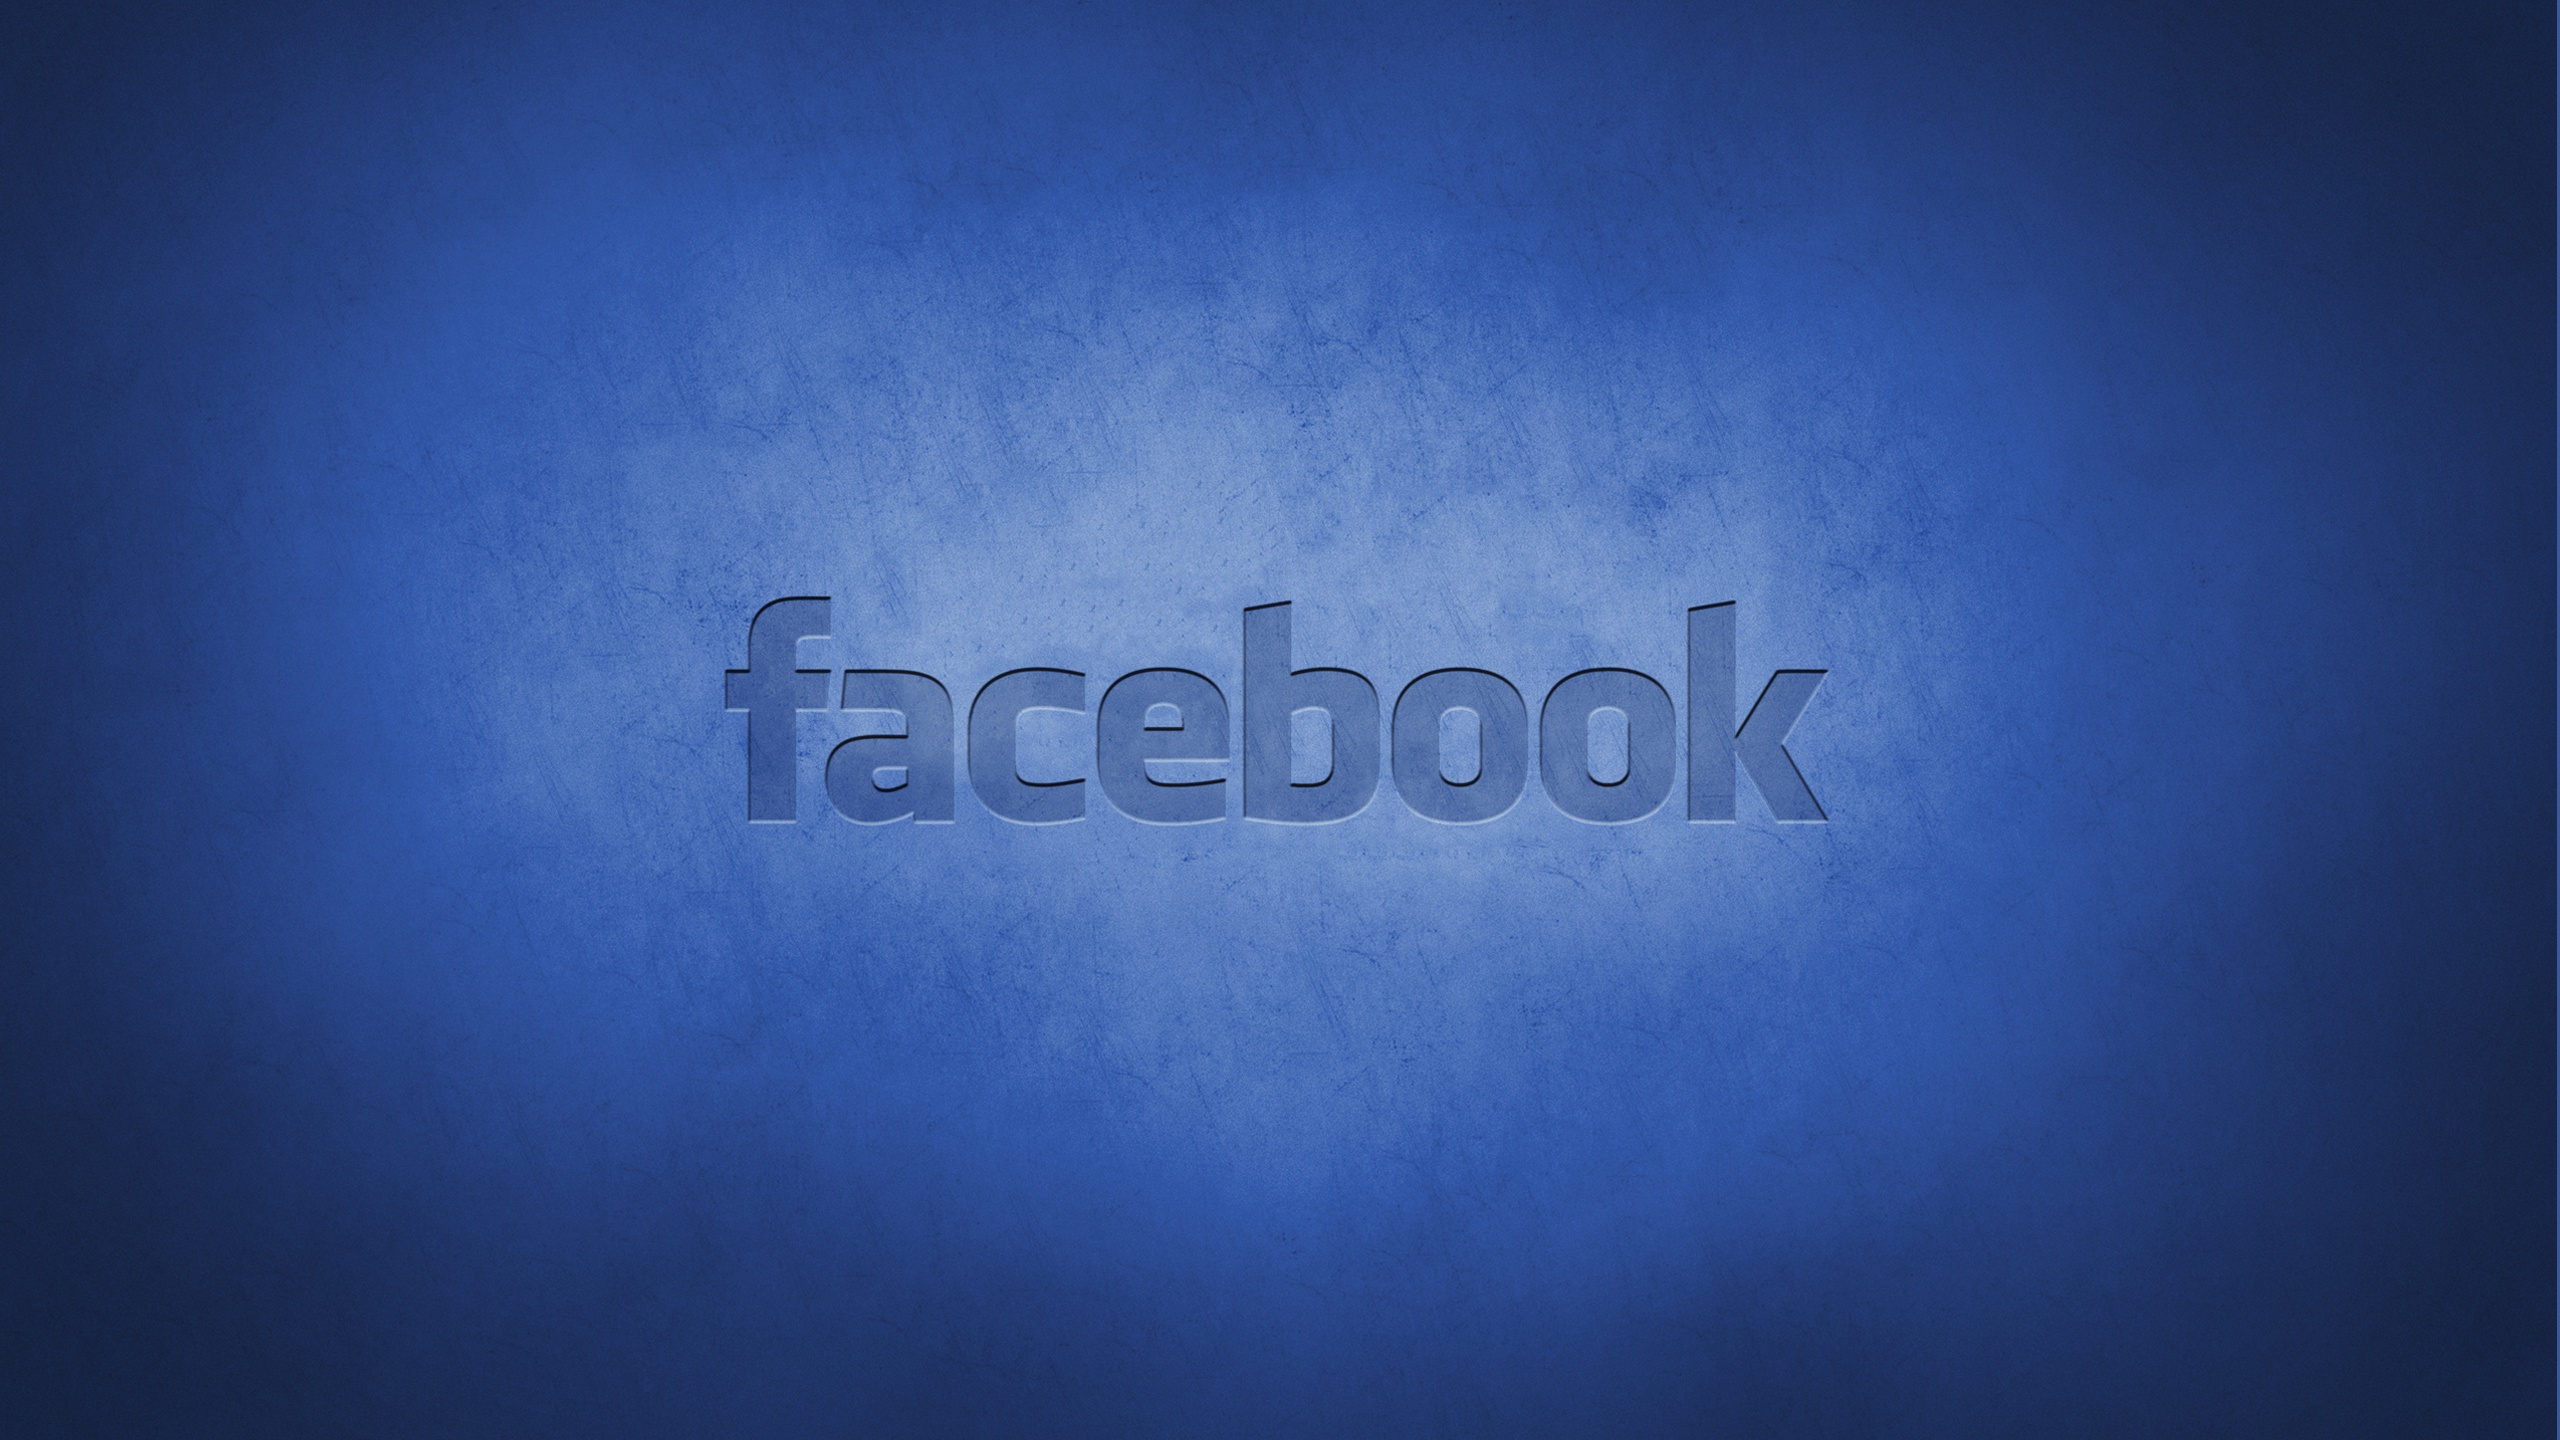 Facebook Wallpapers Backgrounds Hd 15